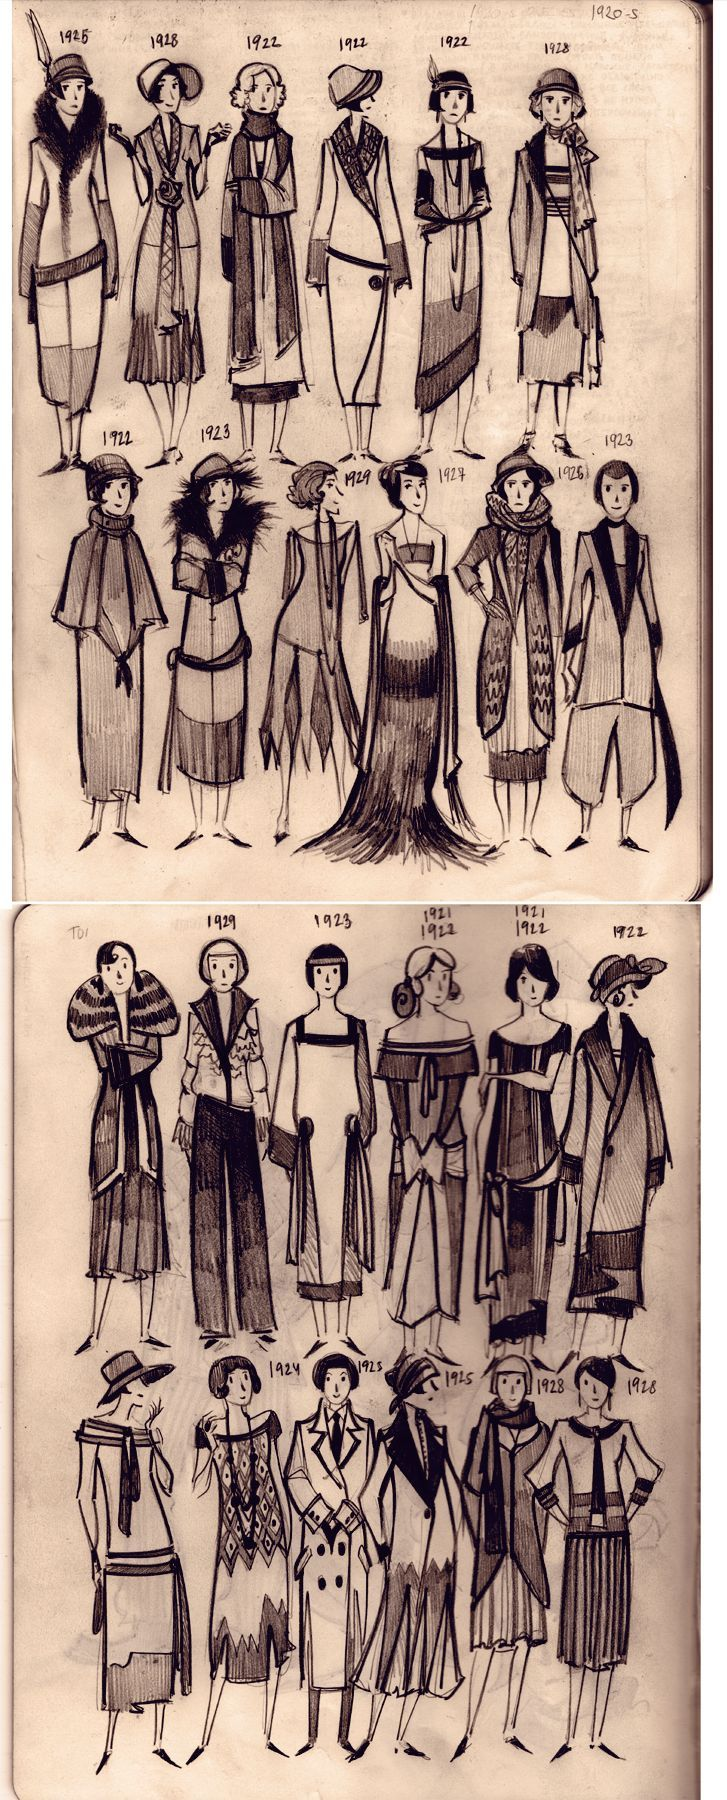 1920's women's fashion; 1923, waist lines began to drop to between the natural waist and the hip; 1924 waistlines drop to the hip; 1928 hem lines start to rise to the knee: